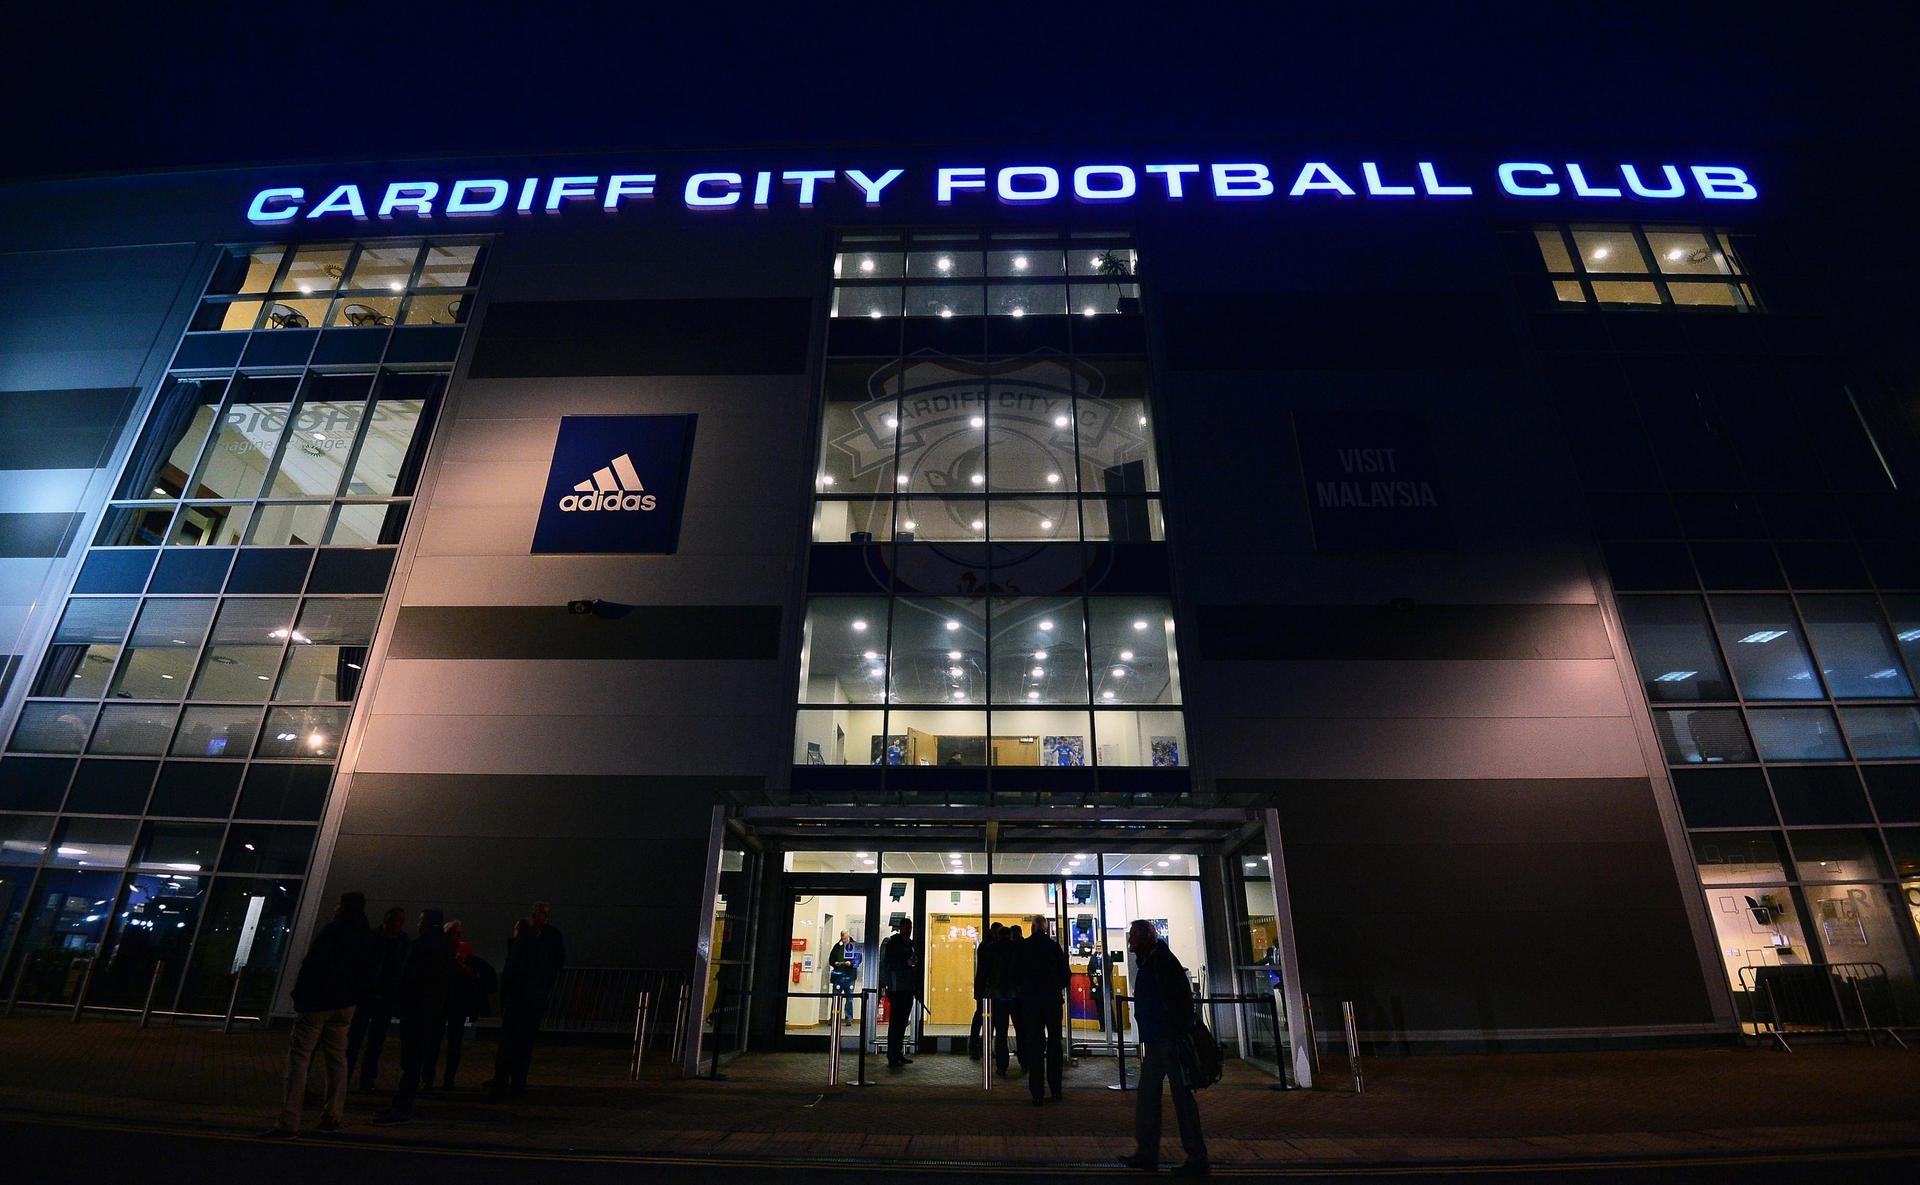 Cardiff City Stadium exterior at night